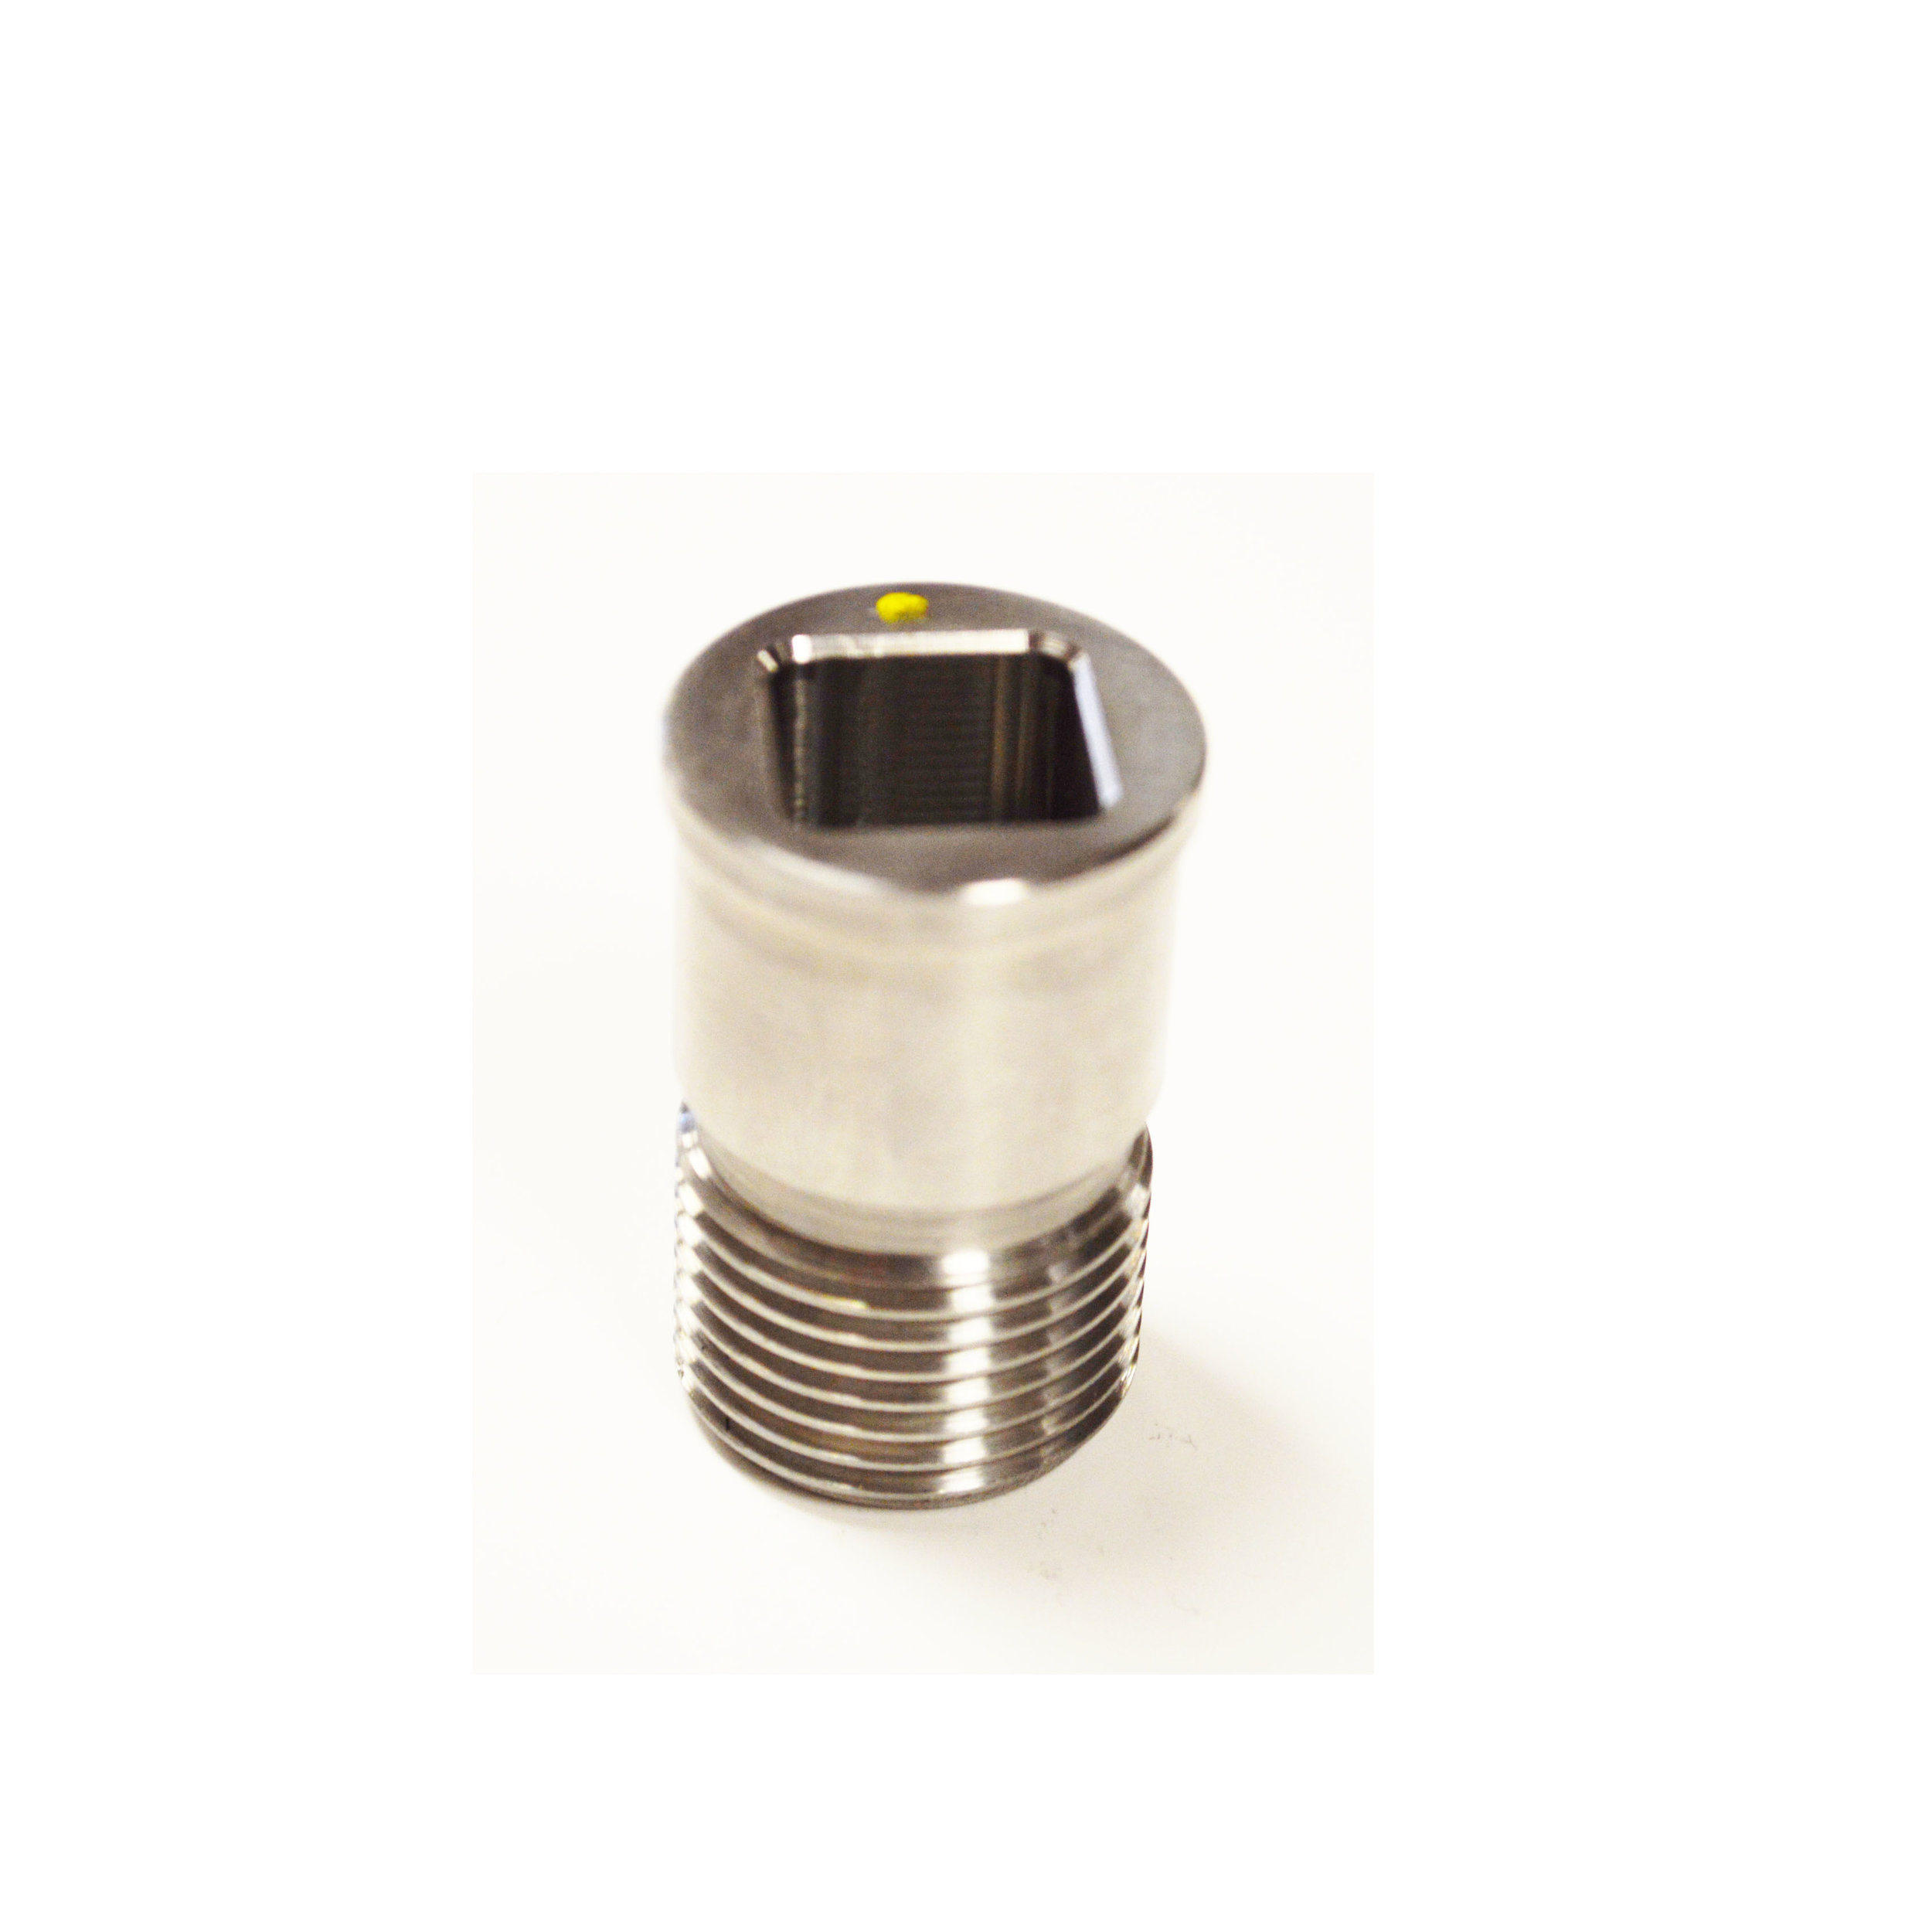 Poppet Bolt-Square          Stainless Steel           SMS-1500           Nitronic 50           SMS-1504